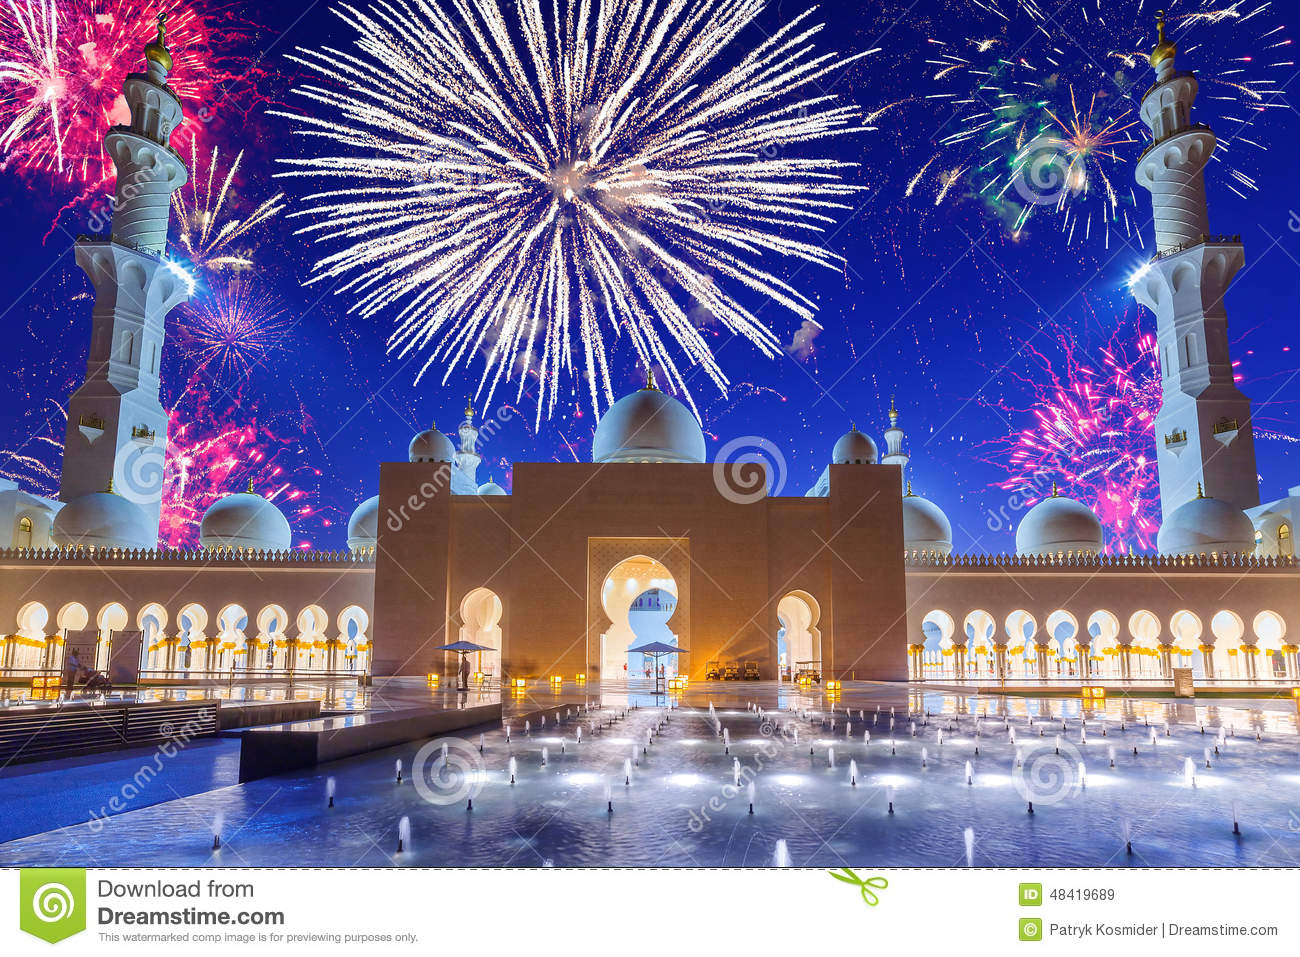 New Years Fireworks Display In Abu Dhabi Stock Image - Image of minaret, display: 48419689